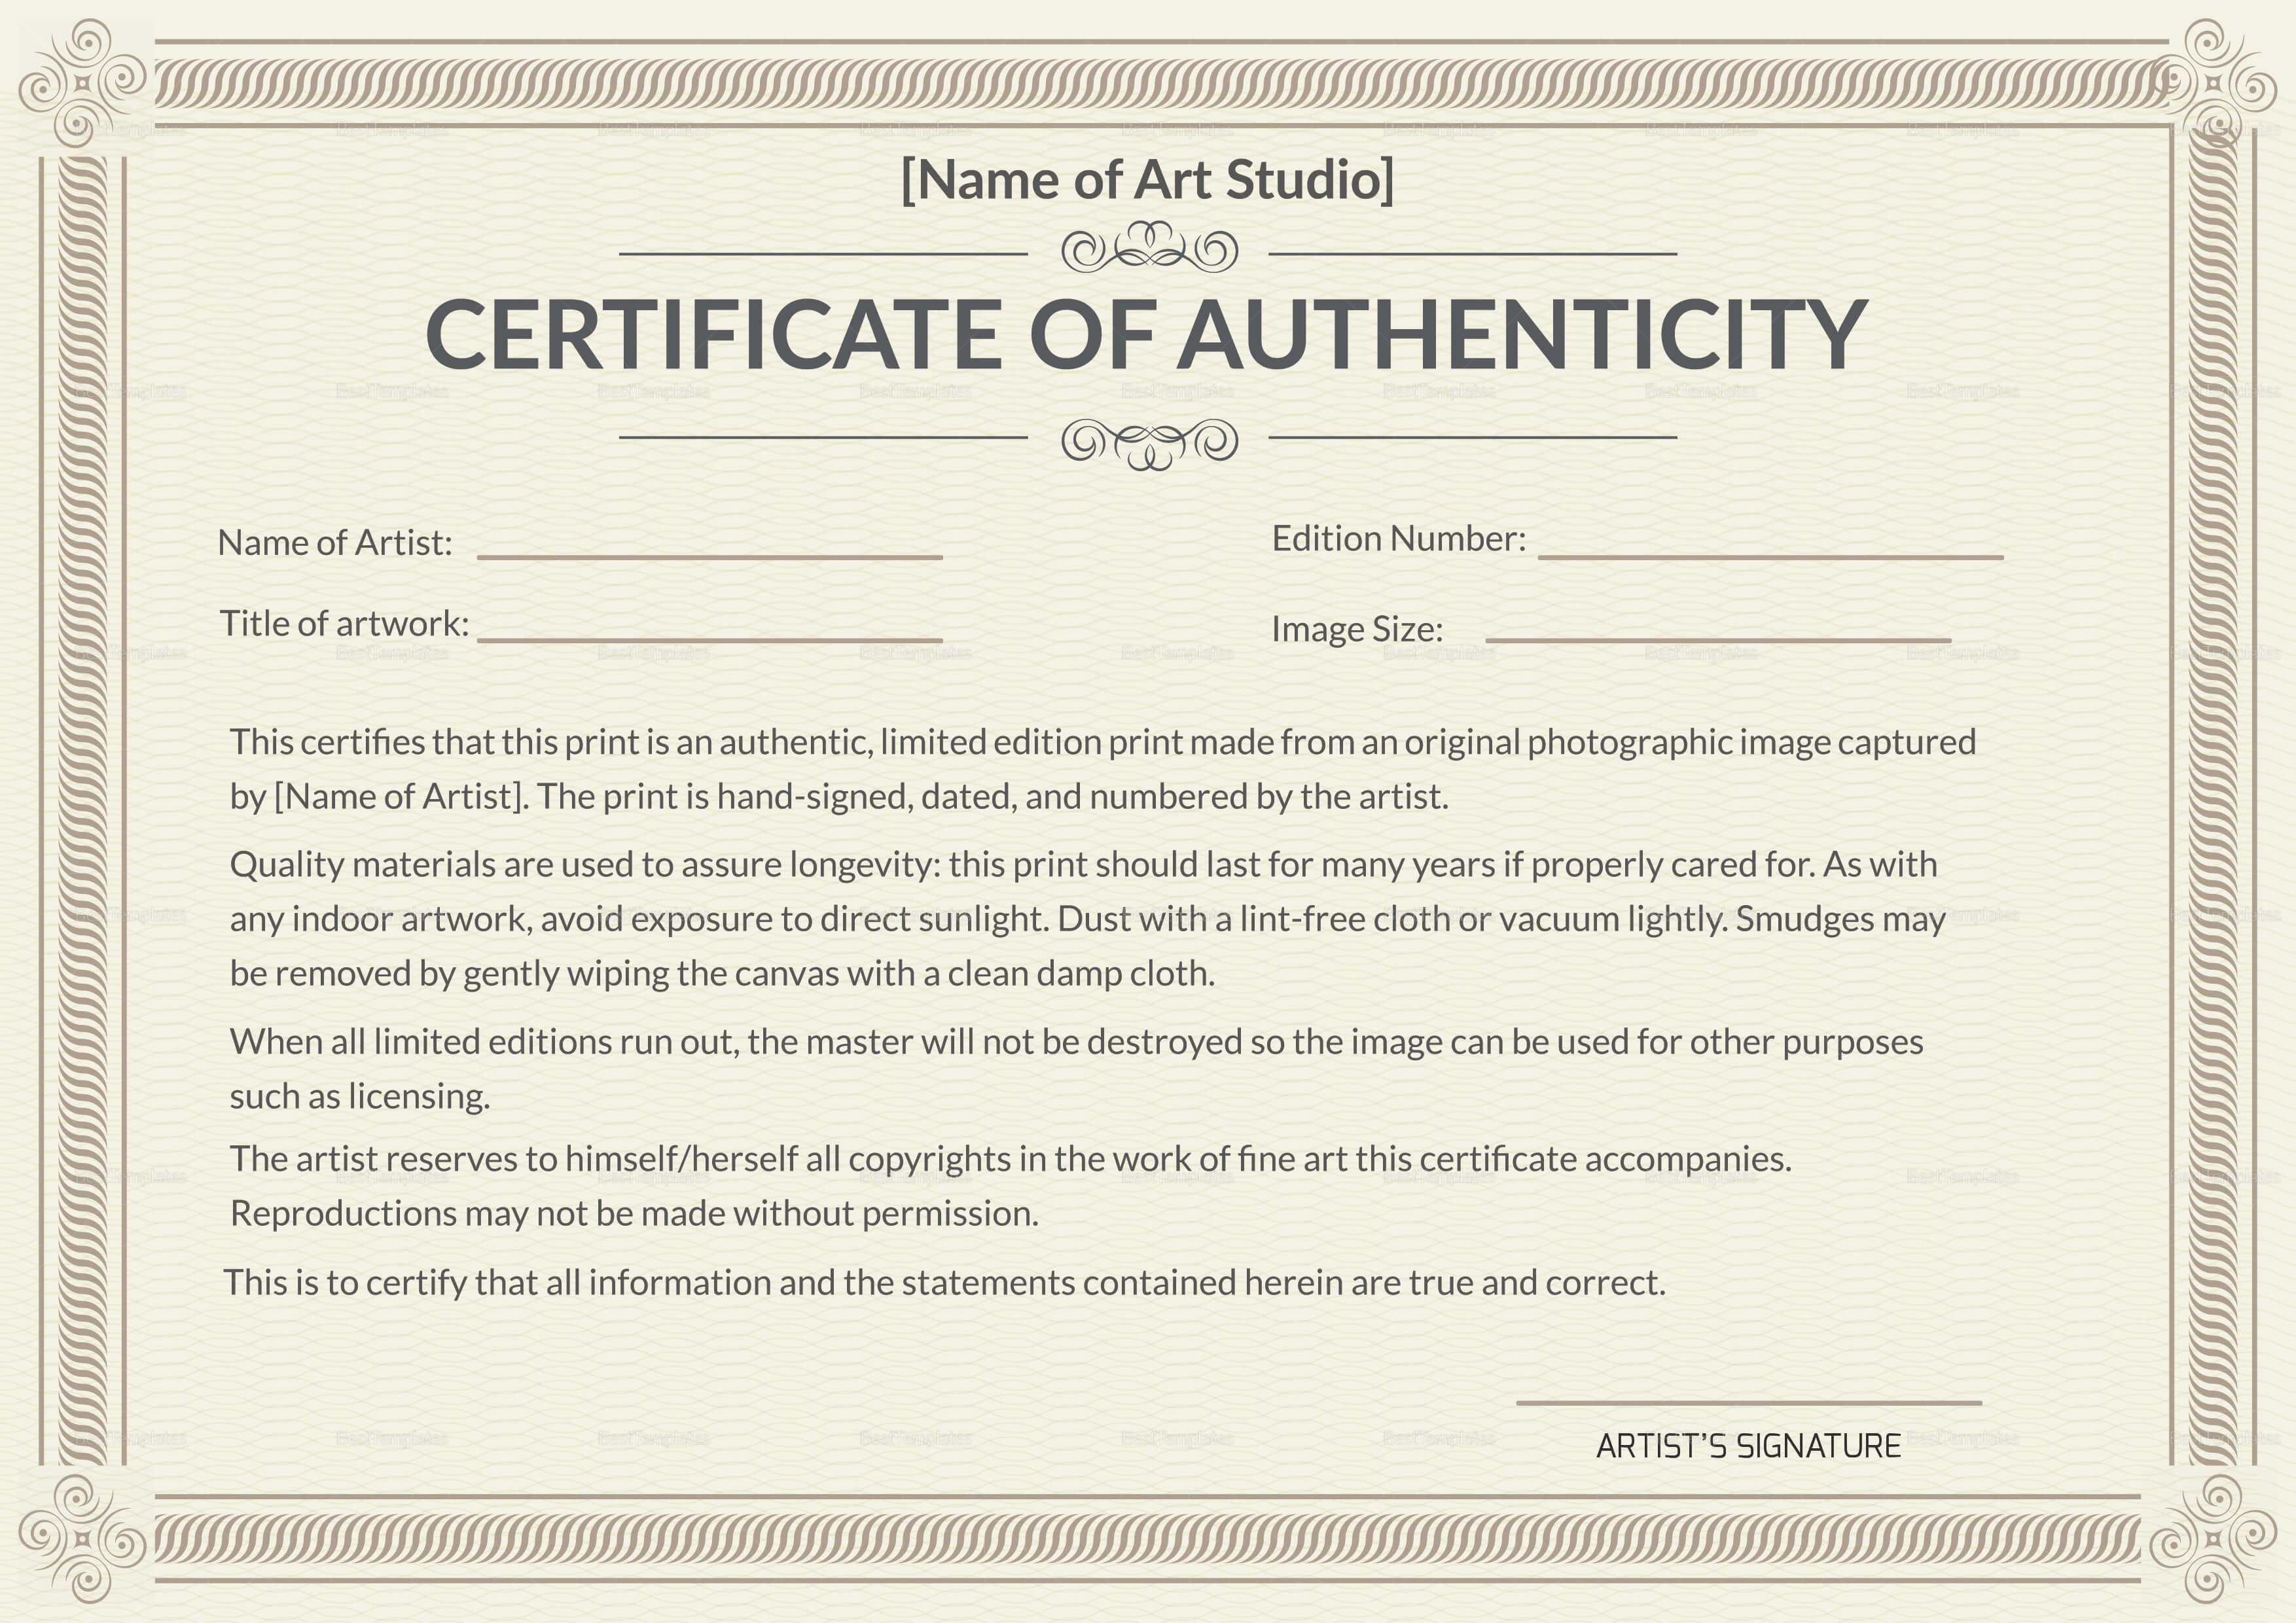 Printable Authenticity Certificate Template Inside Certificate Of Authenticity Template